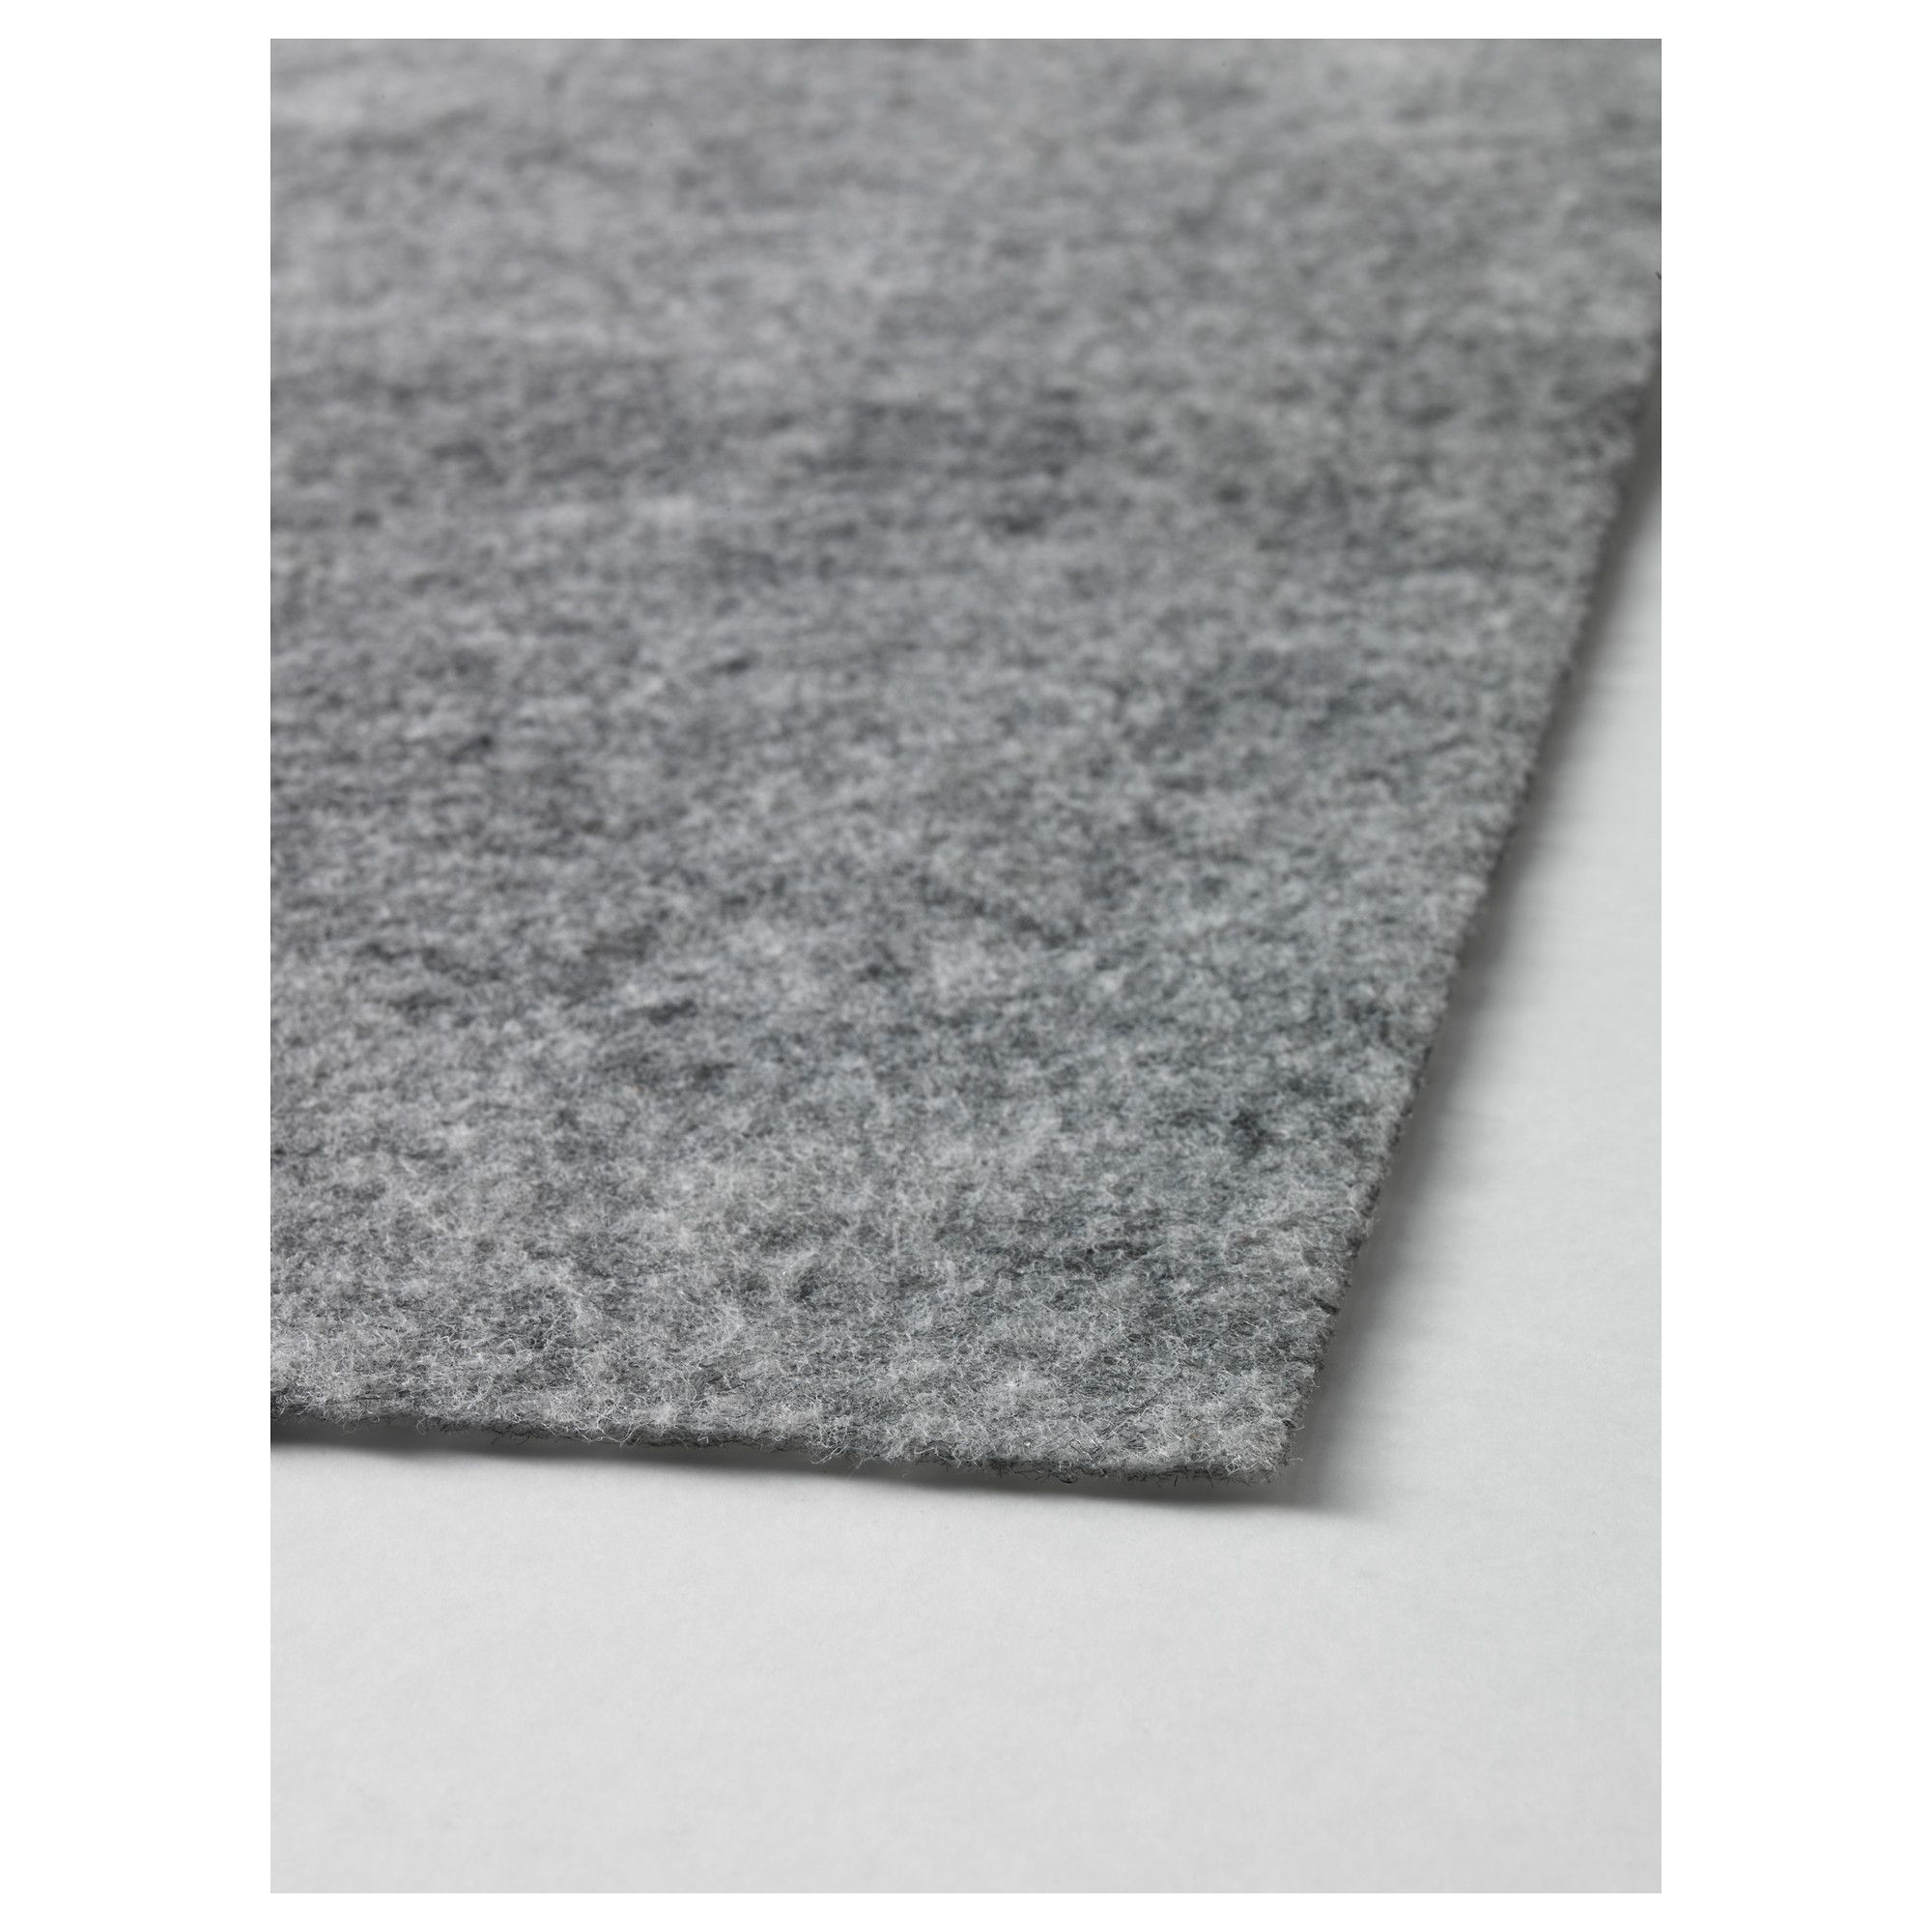 Ikea BÅring Rug Underlay With Anti Slip Keeps The In Place Which Reduces Risk Of Slipping And Makes It Easier To Vacuum